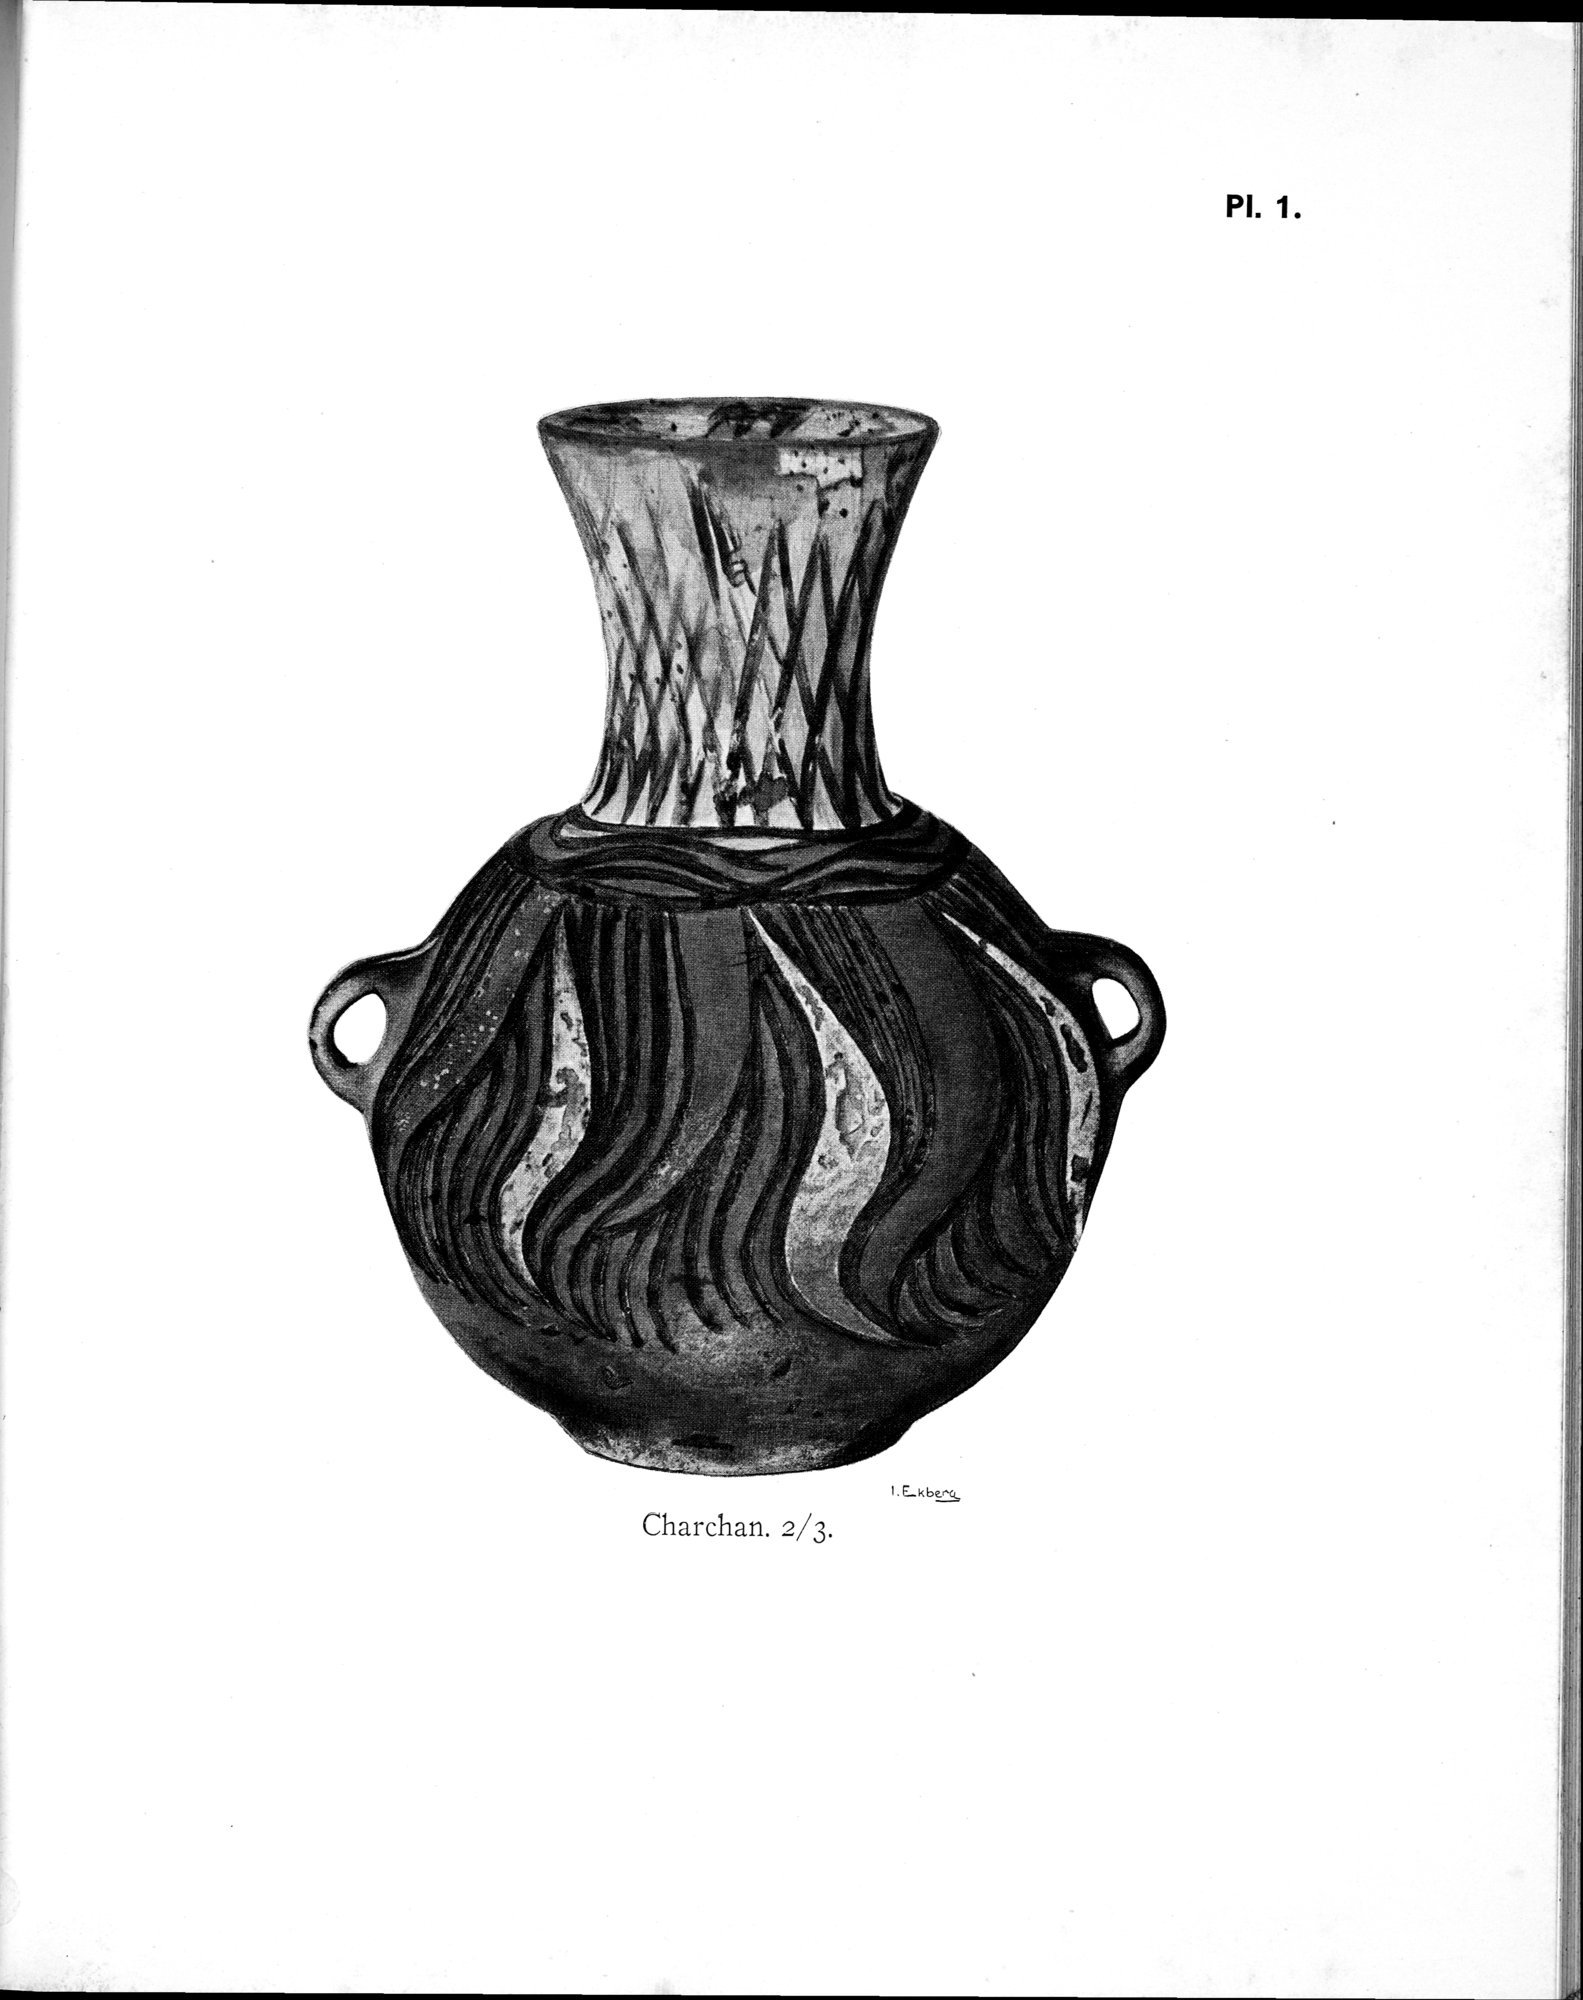 Archaeological Researches in Sinkiang : vol.1 / Page 287 (Grayscale High Resolution Image)